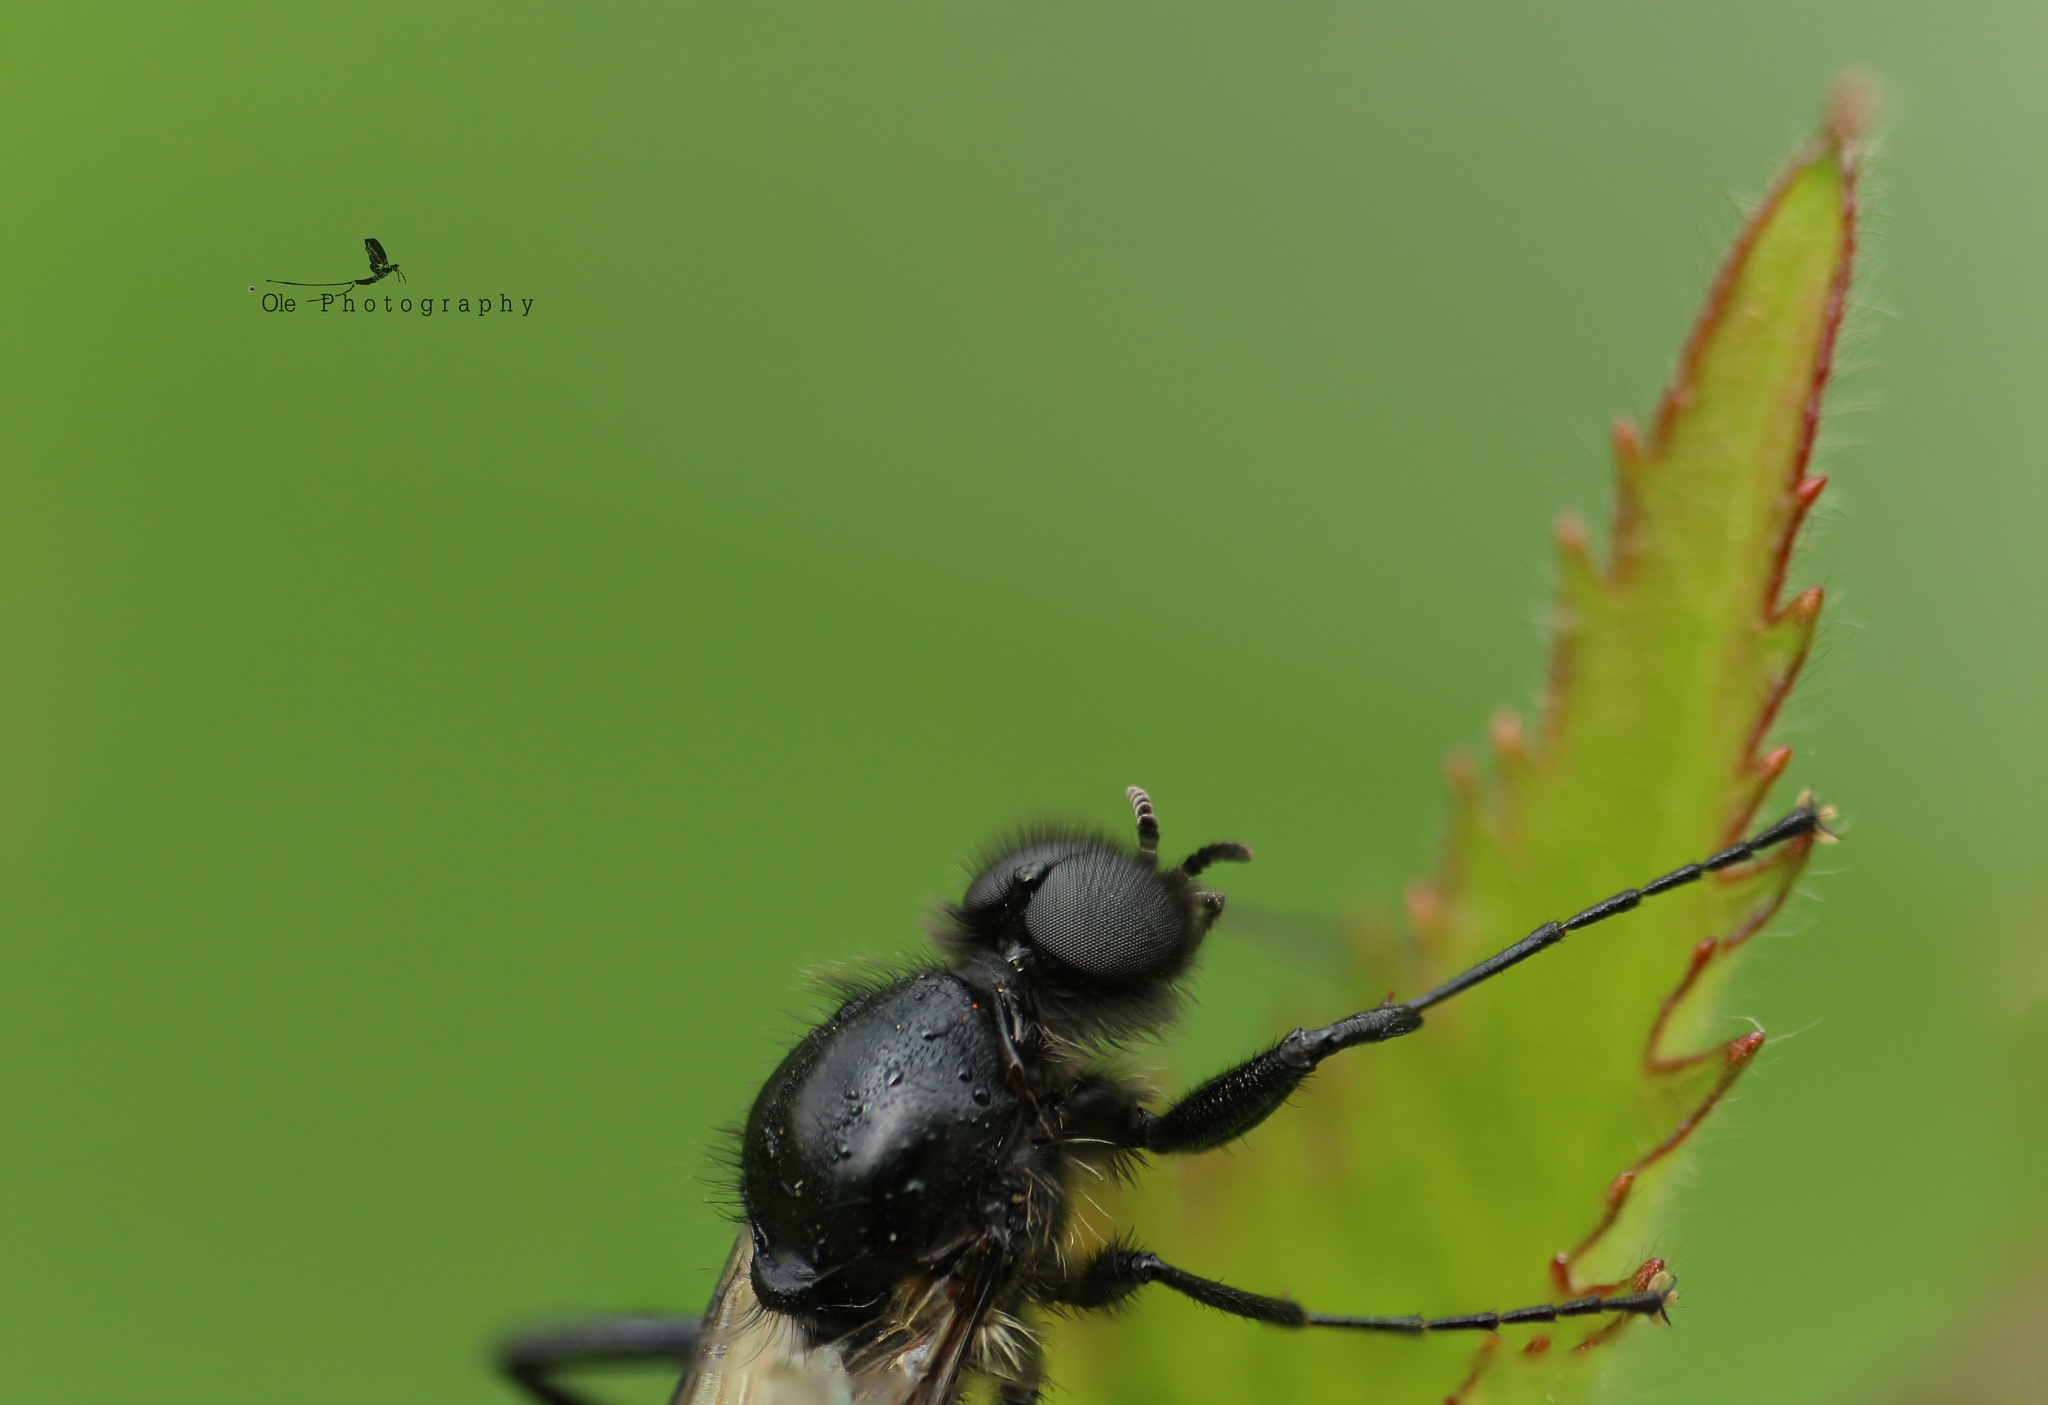 Fruit fly by OlePhotography